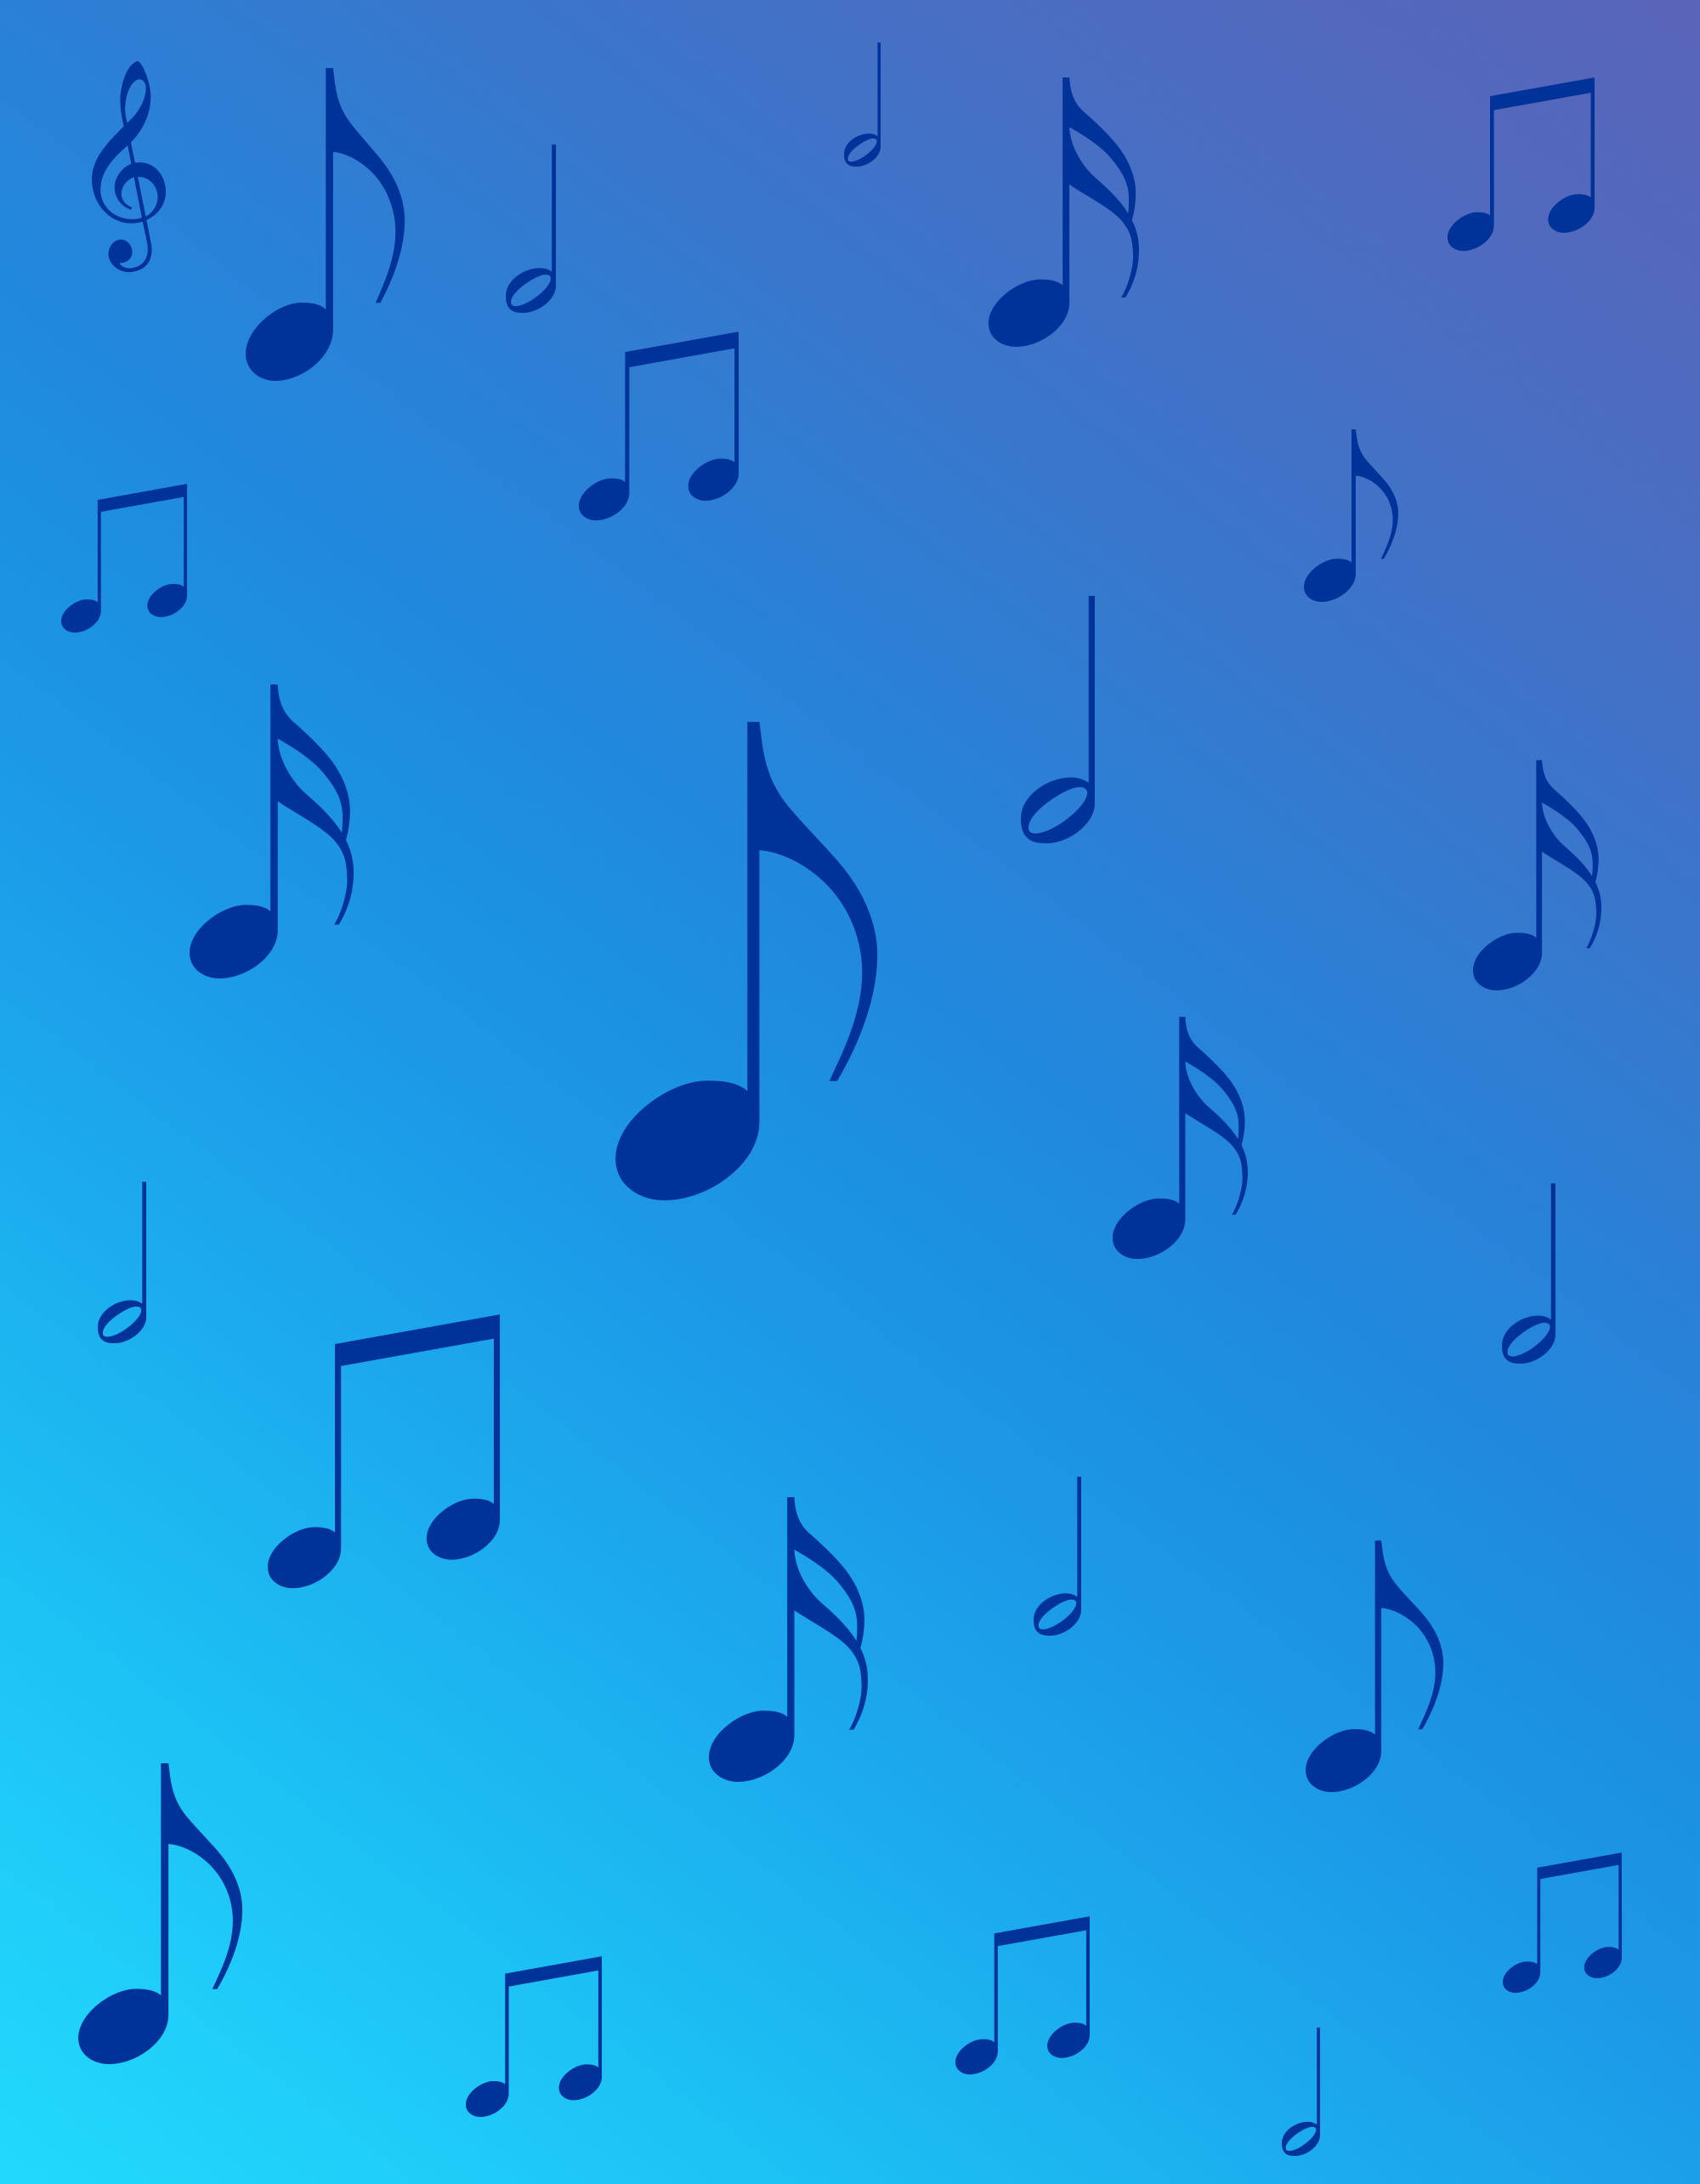 Musical notes over a blue gradient background